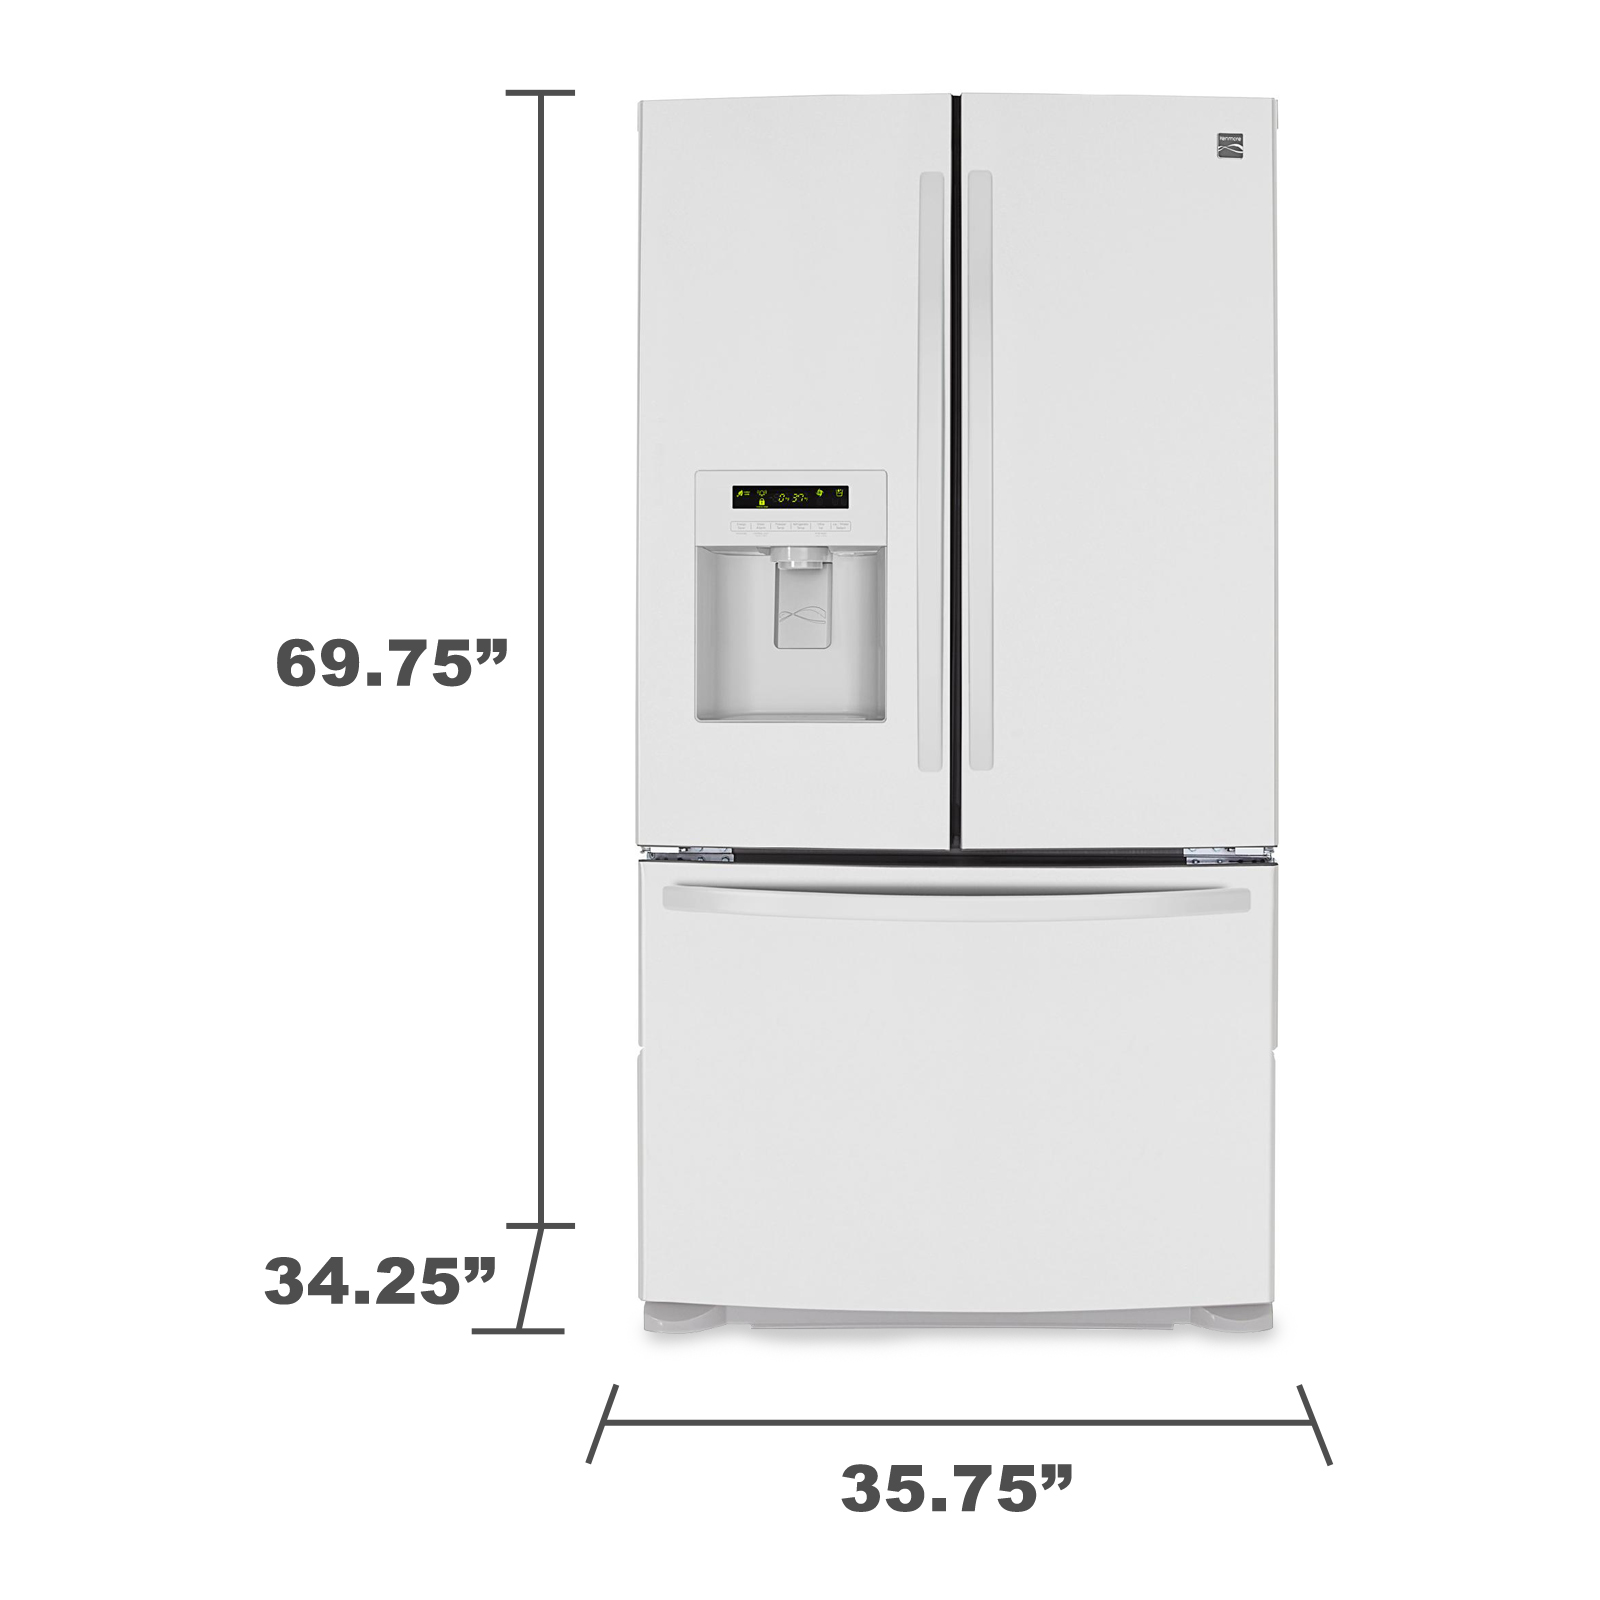 Kenmore 24.1 cu. ft. French Door Bottom-Freezer Refrigerator -  White